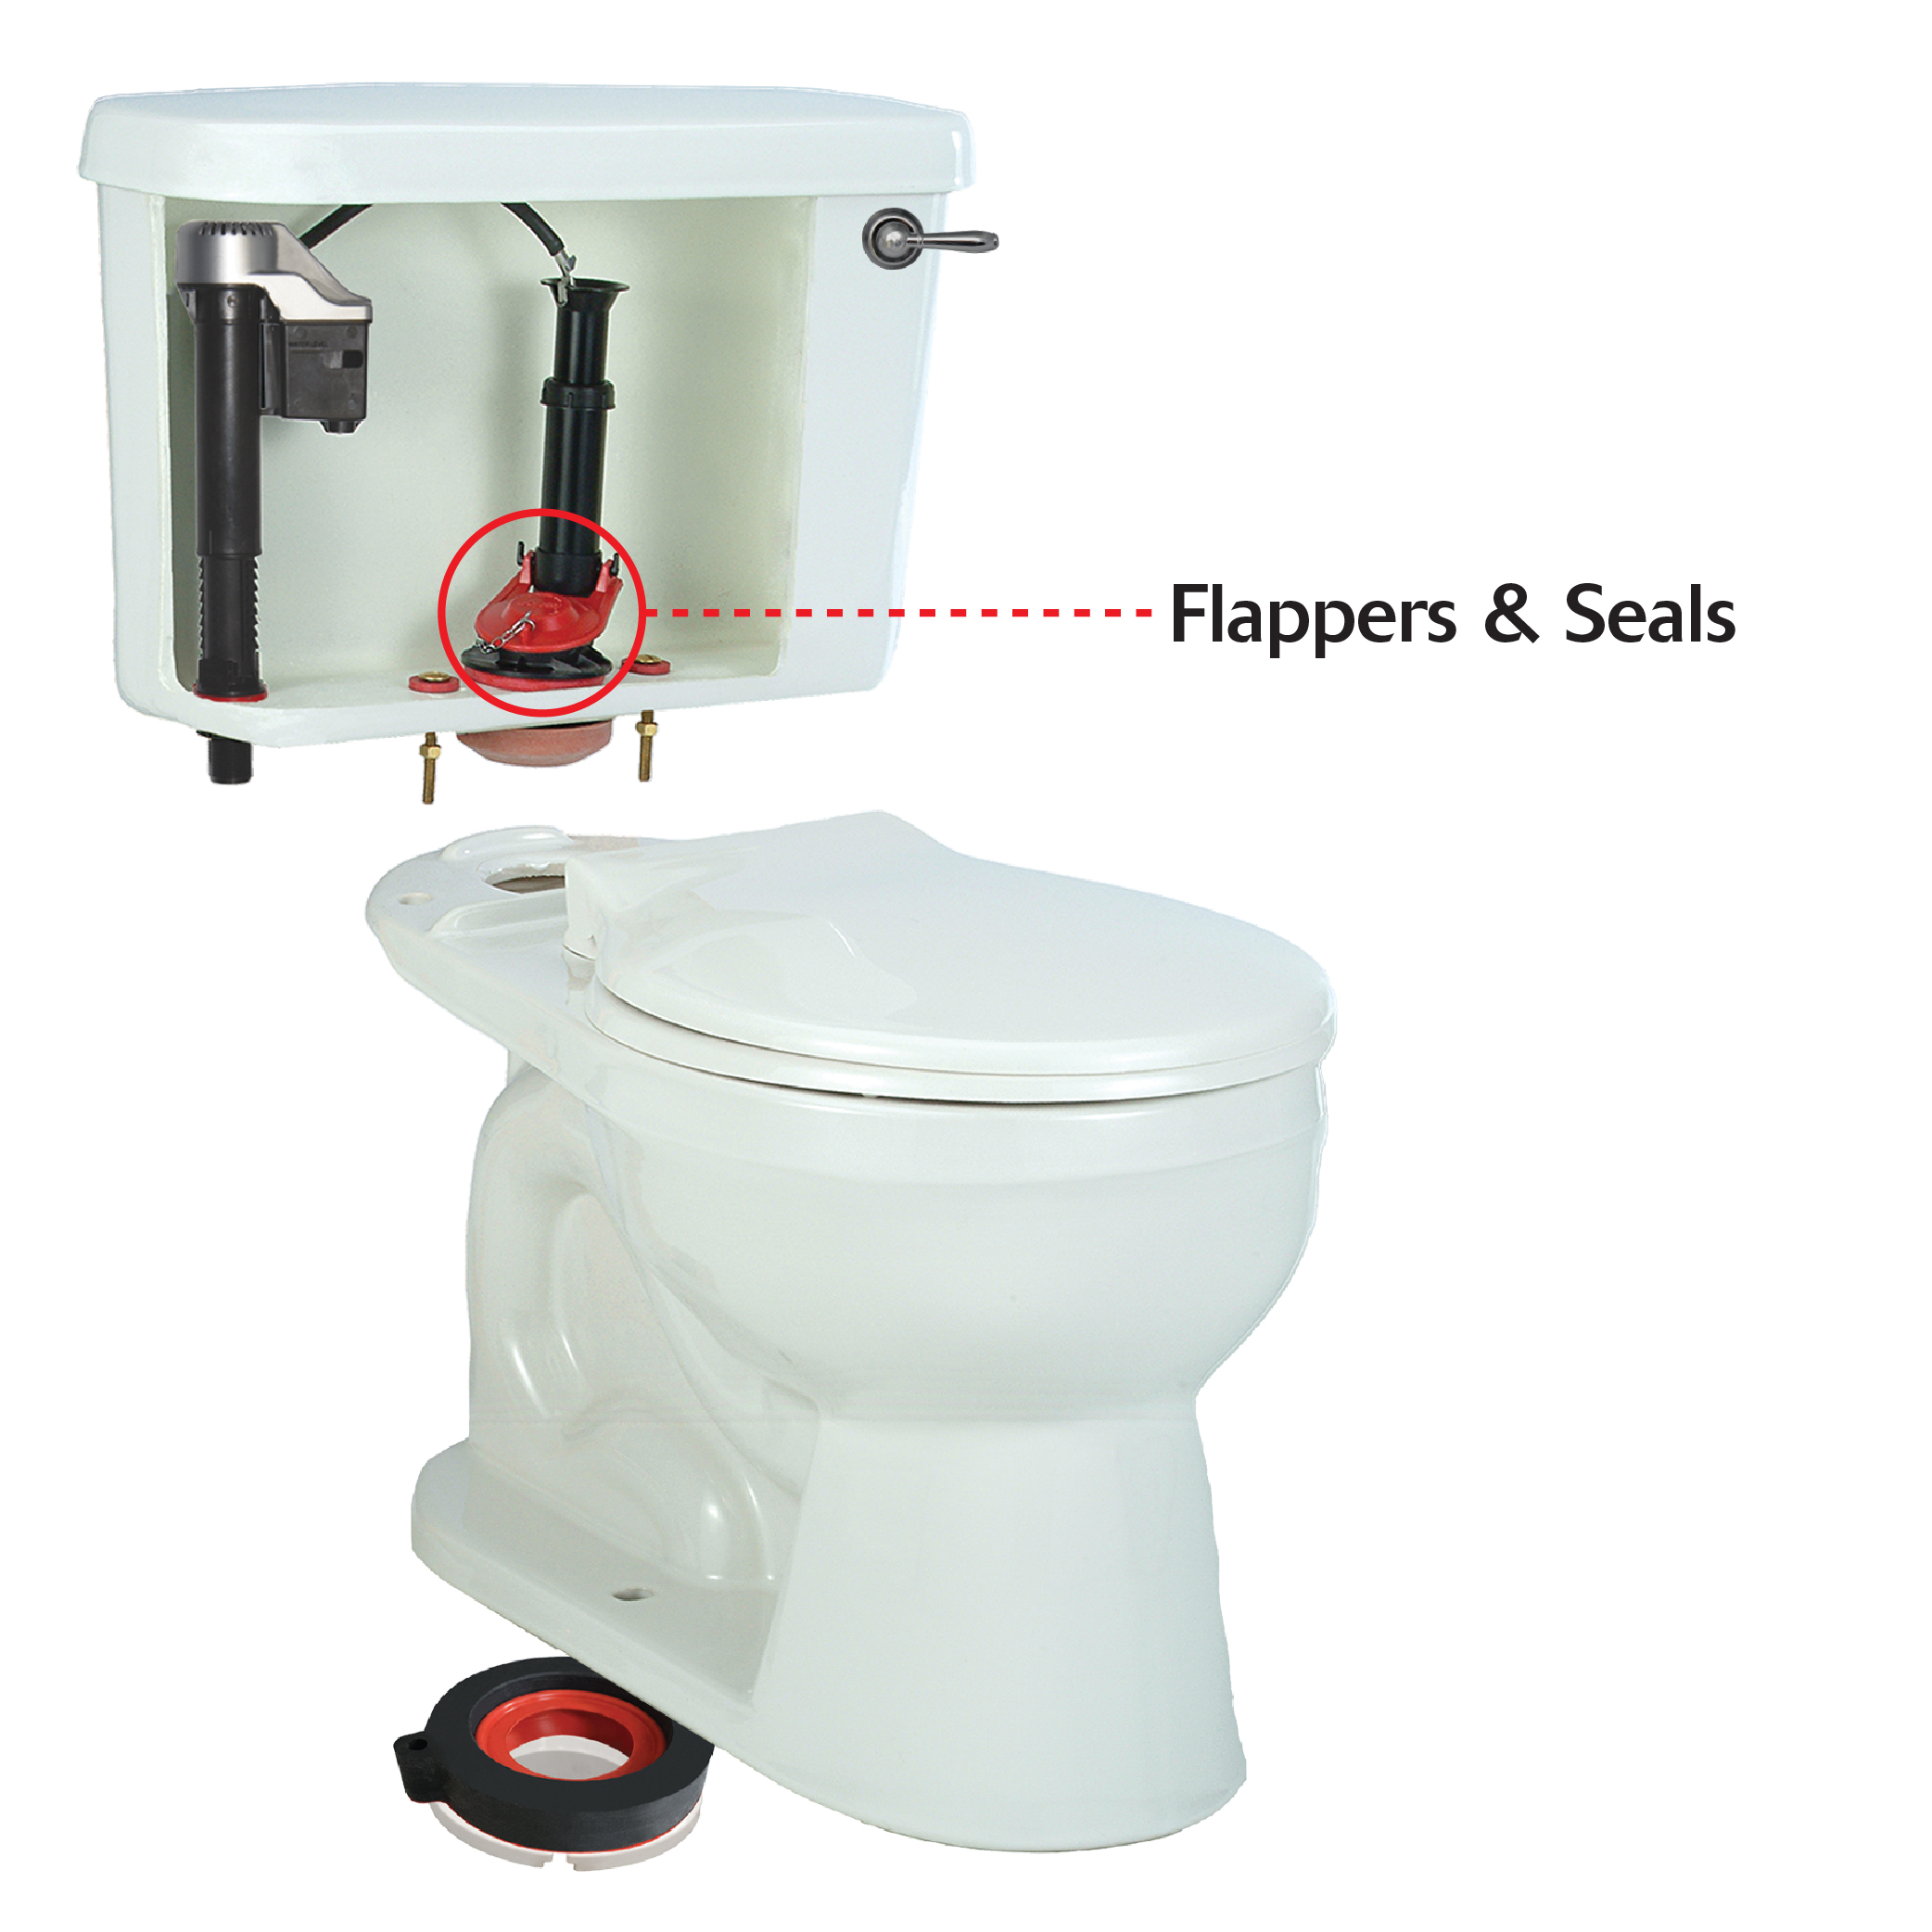 water saver toilet flapper. Toilet Flappers And Seals Flapper  Replacement Replacing Seal